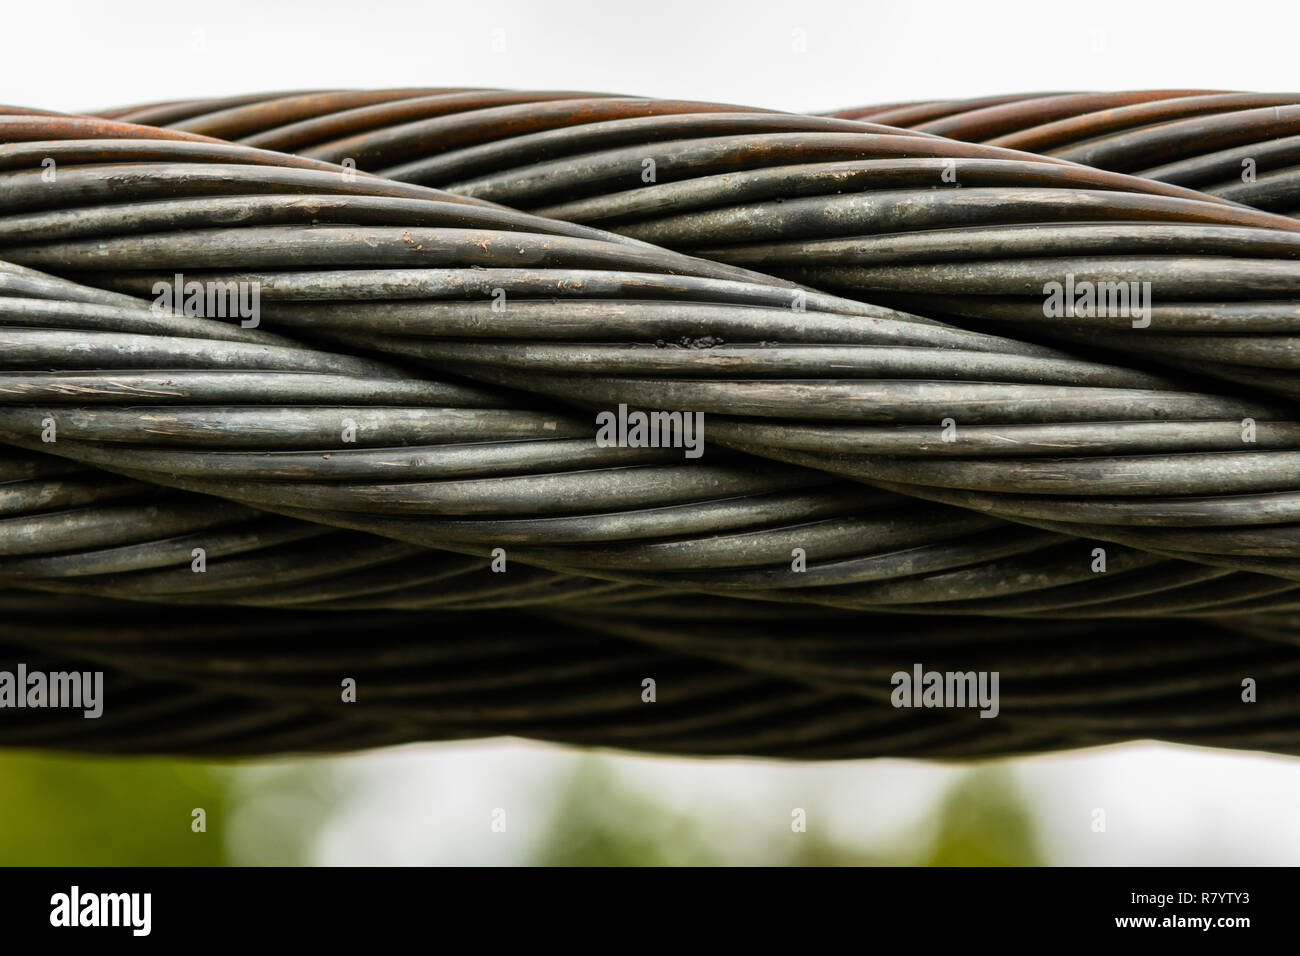 hight resolution of thick braided wire cable on suspension bridge